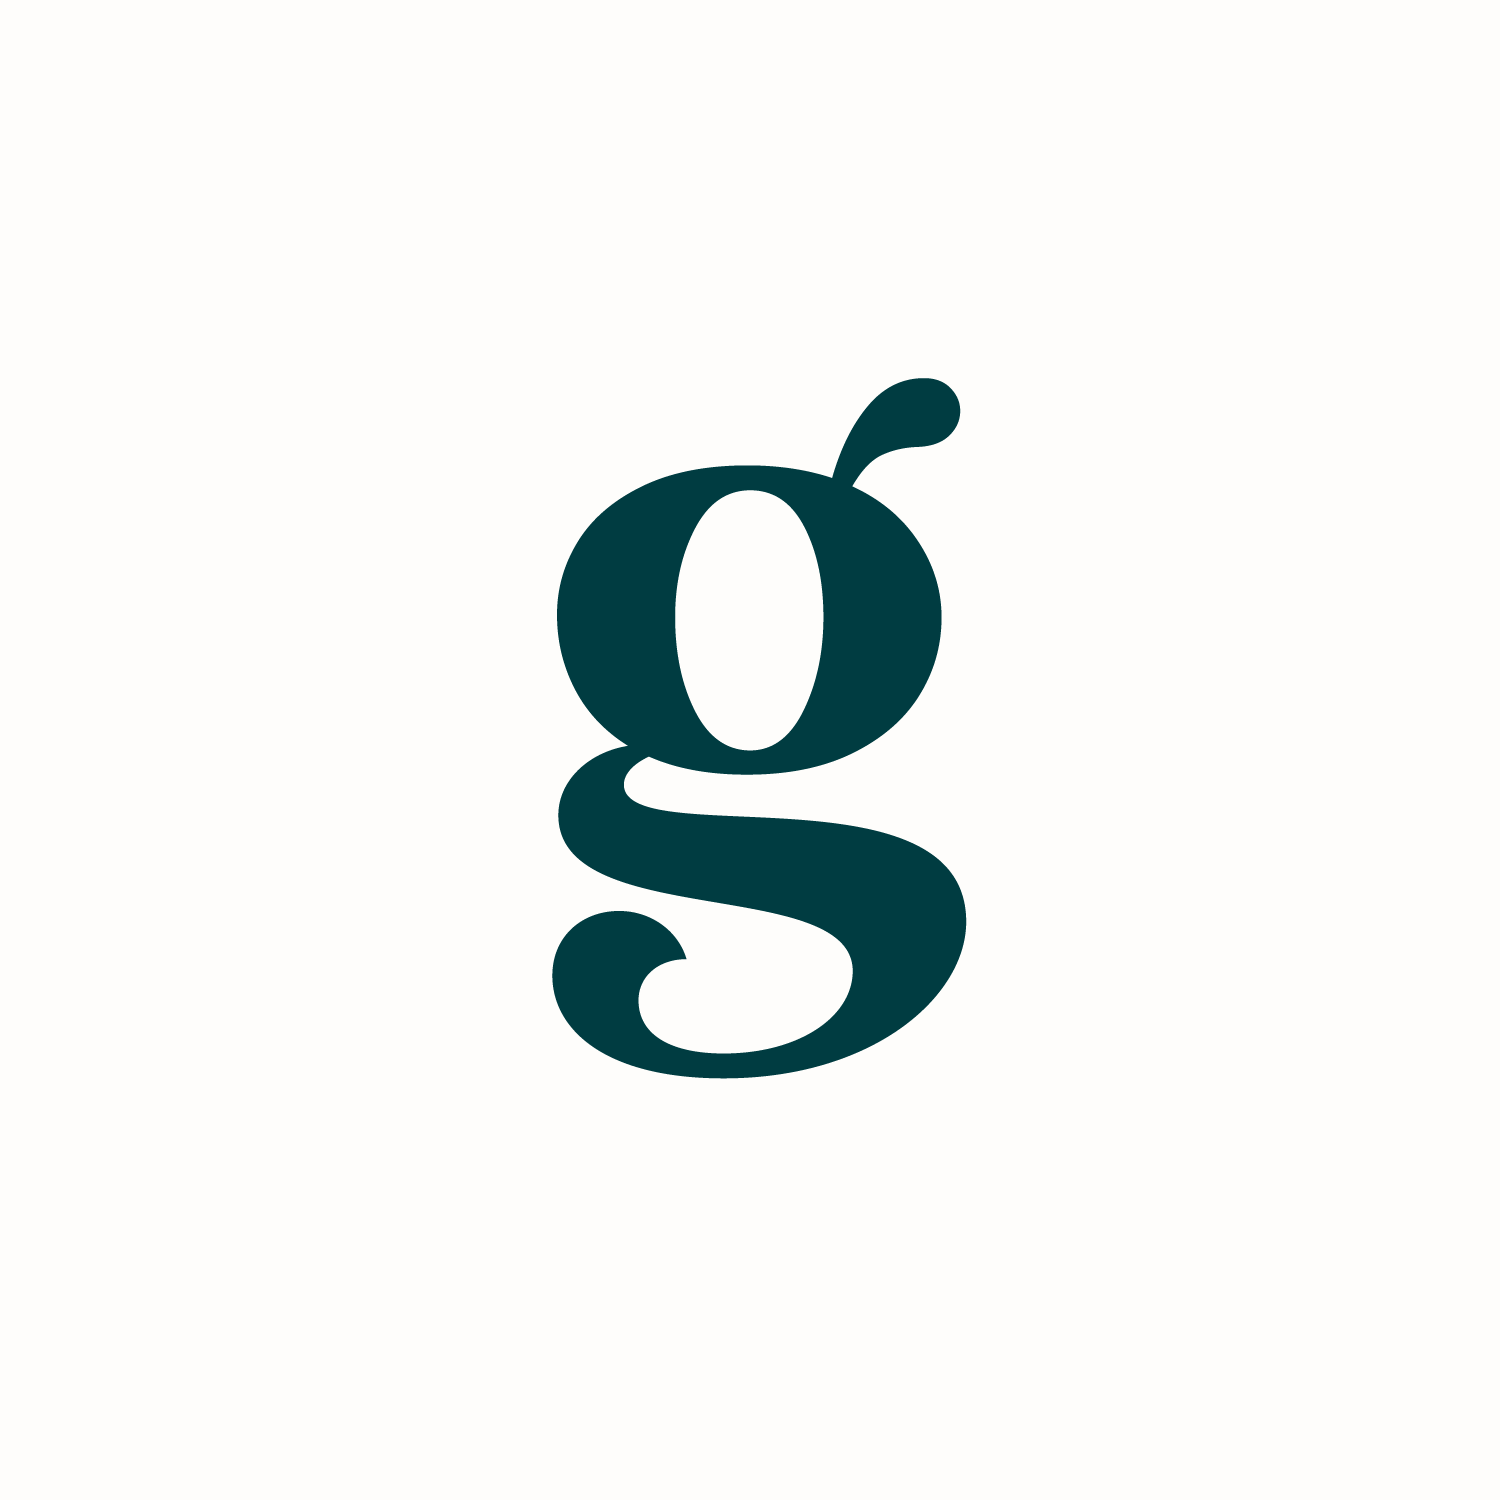 Teal 'g' monogram on a white background for Grazy